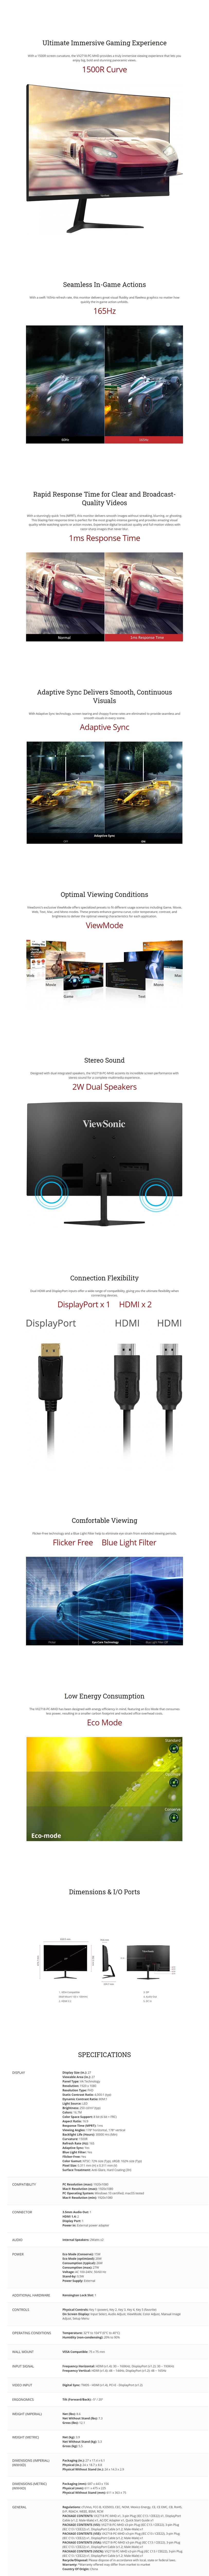 """A large marketing image providing additional information about the product ViewSonic VX2718 27"""" FHD Adaptive Sync 165Hz 1MS VA LED Gaming Monitor - Additional alt info not provided"""